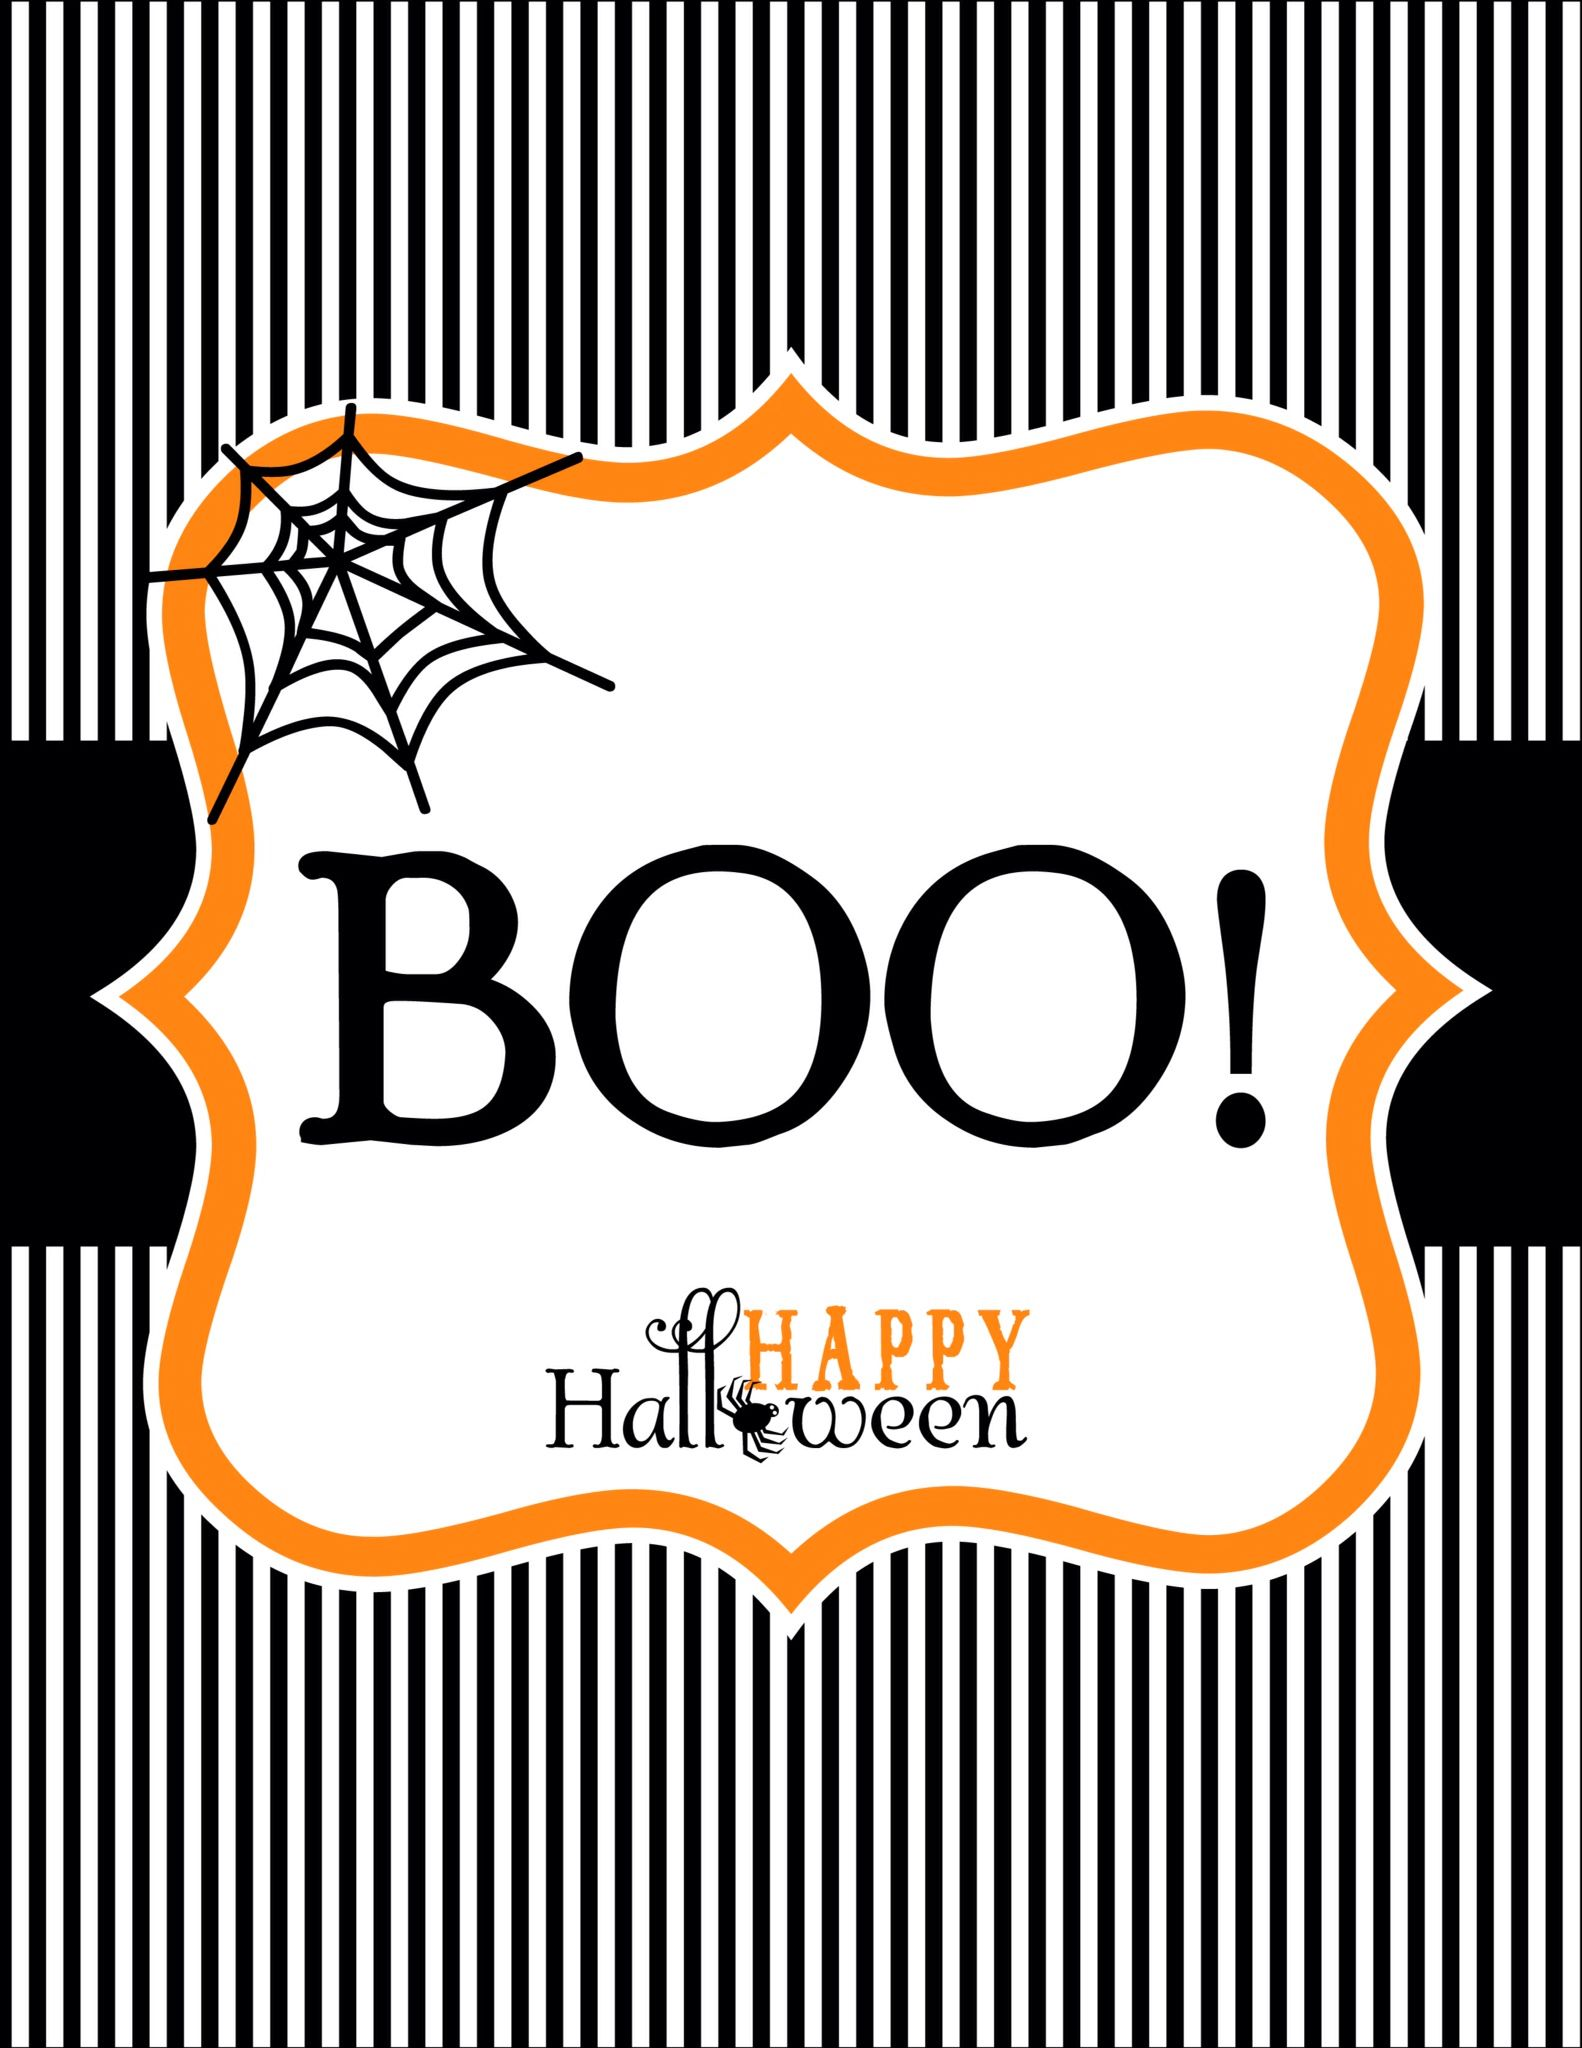 Halloween | Halloween: Signs, Pictures, and Sayings | Pinterest